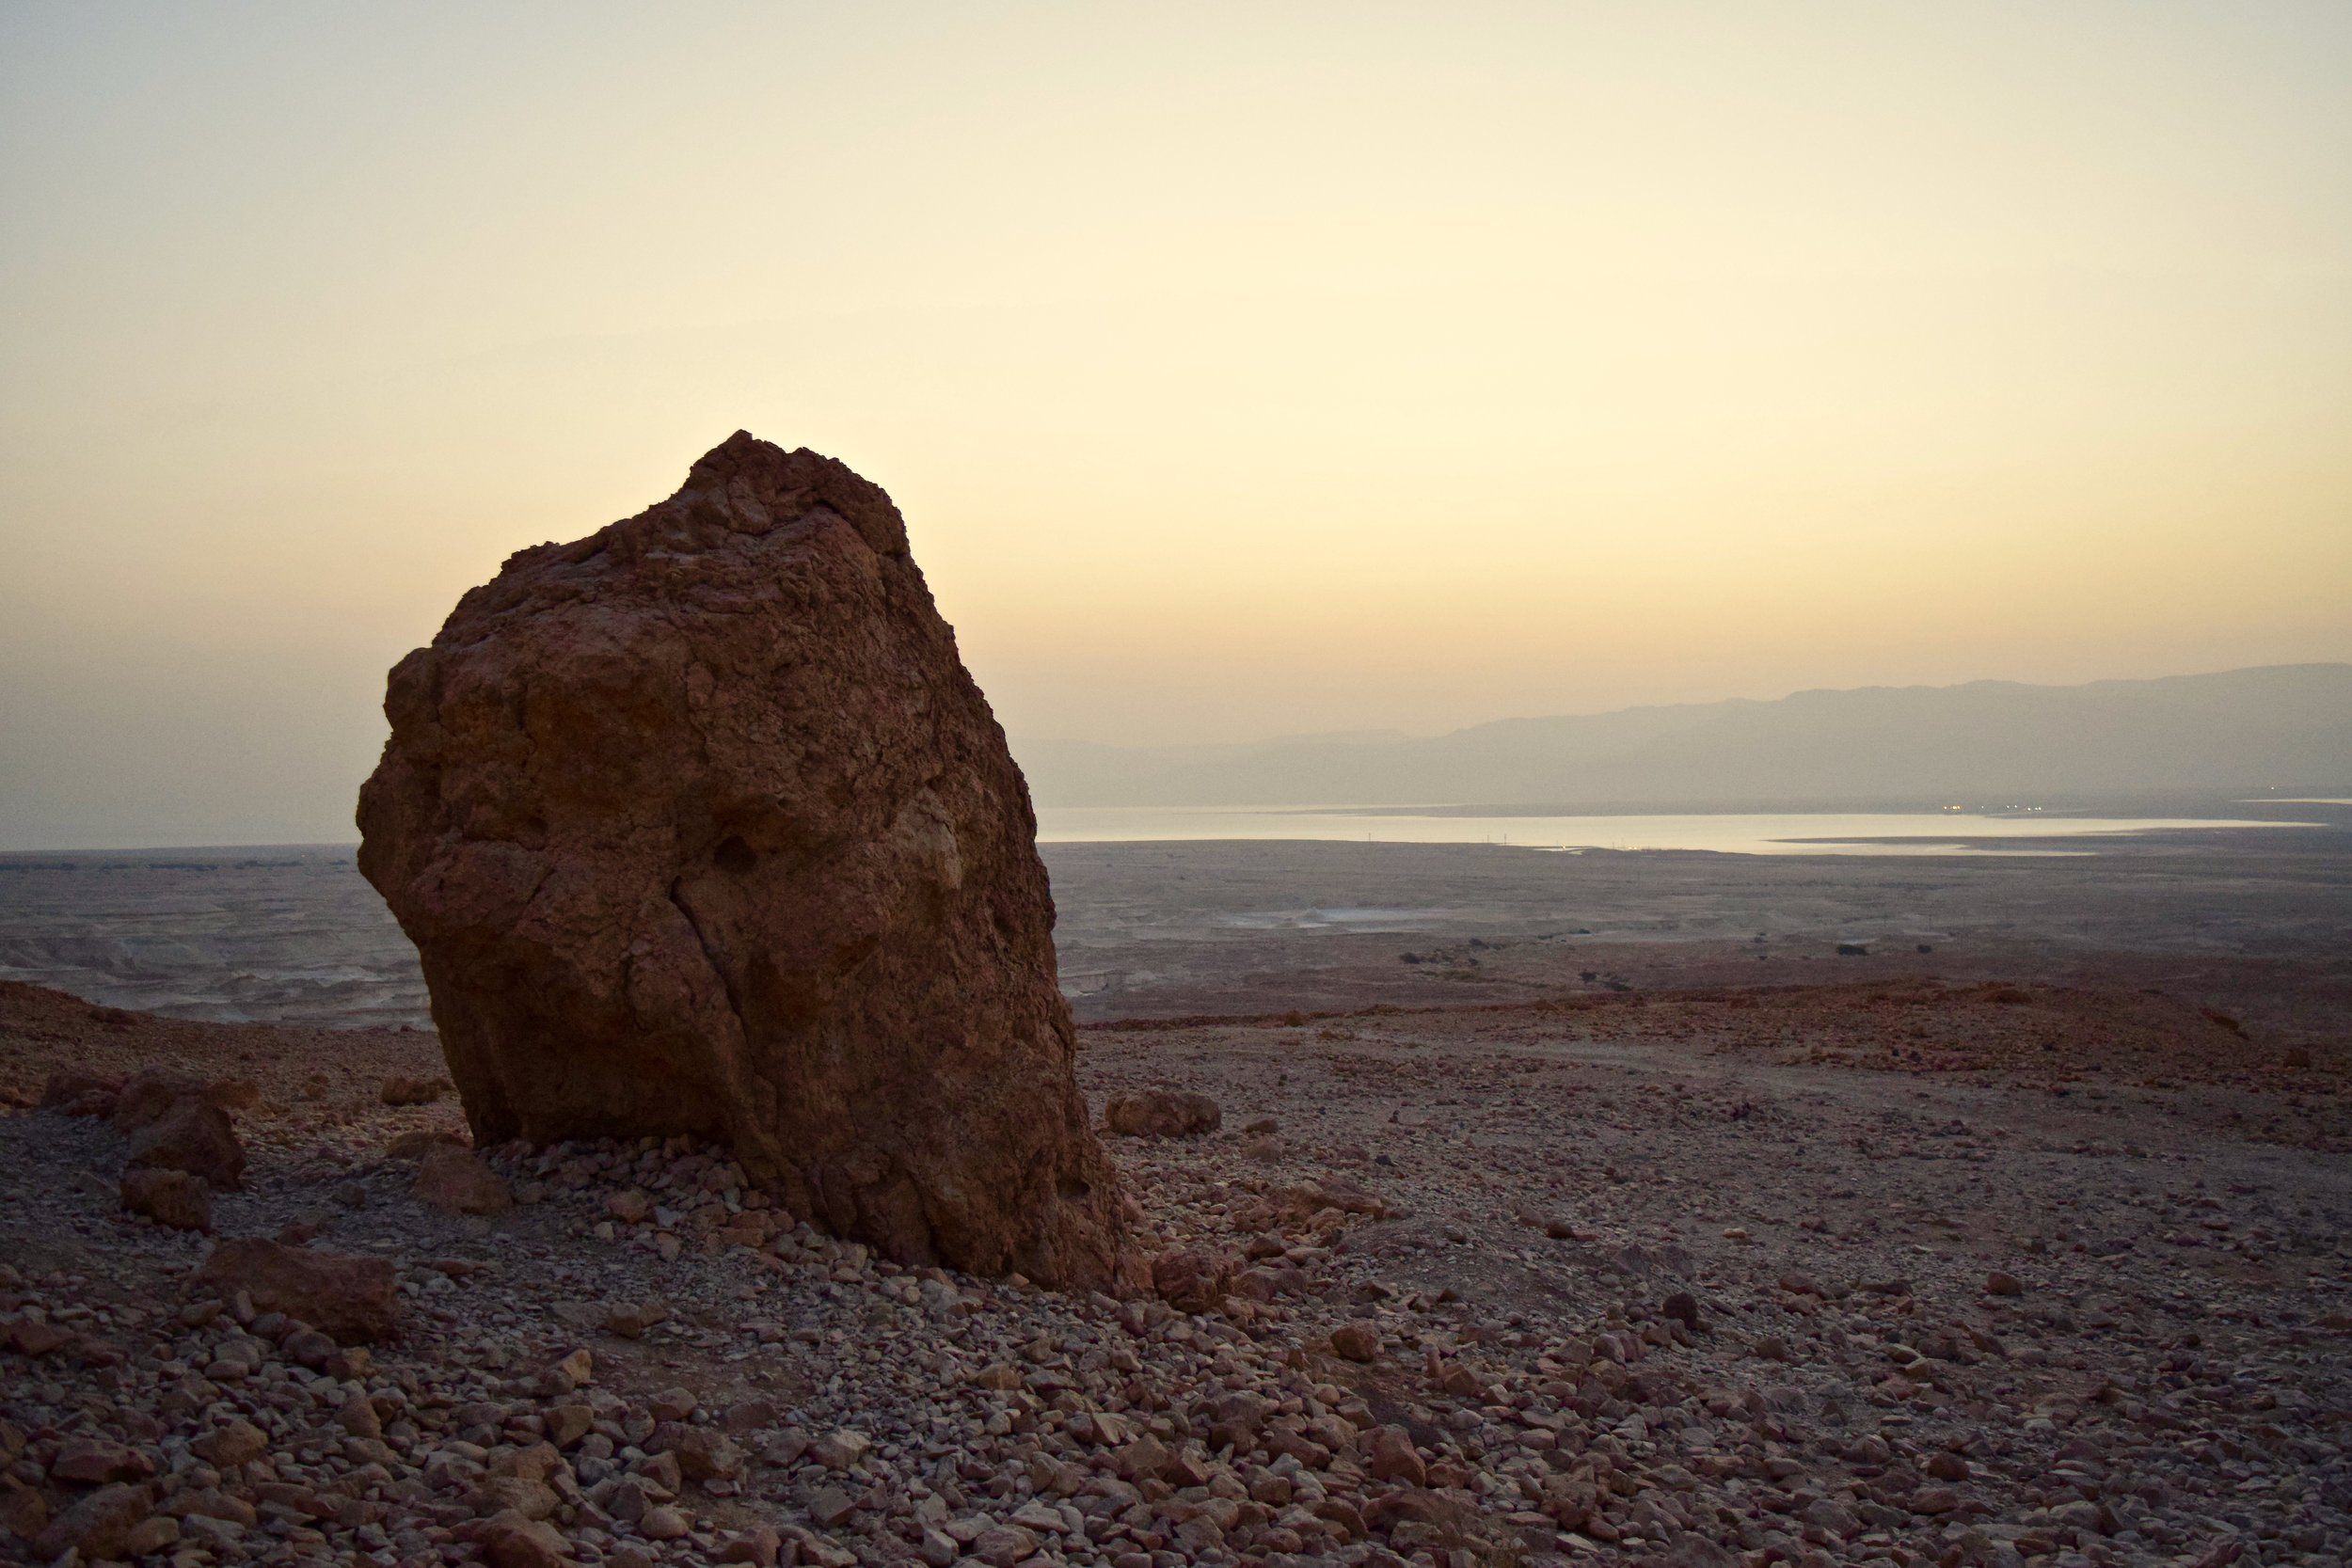 Base of Masada with the Dead Sea in the background